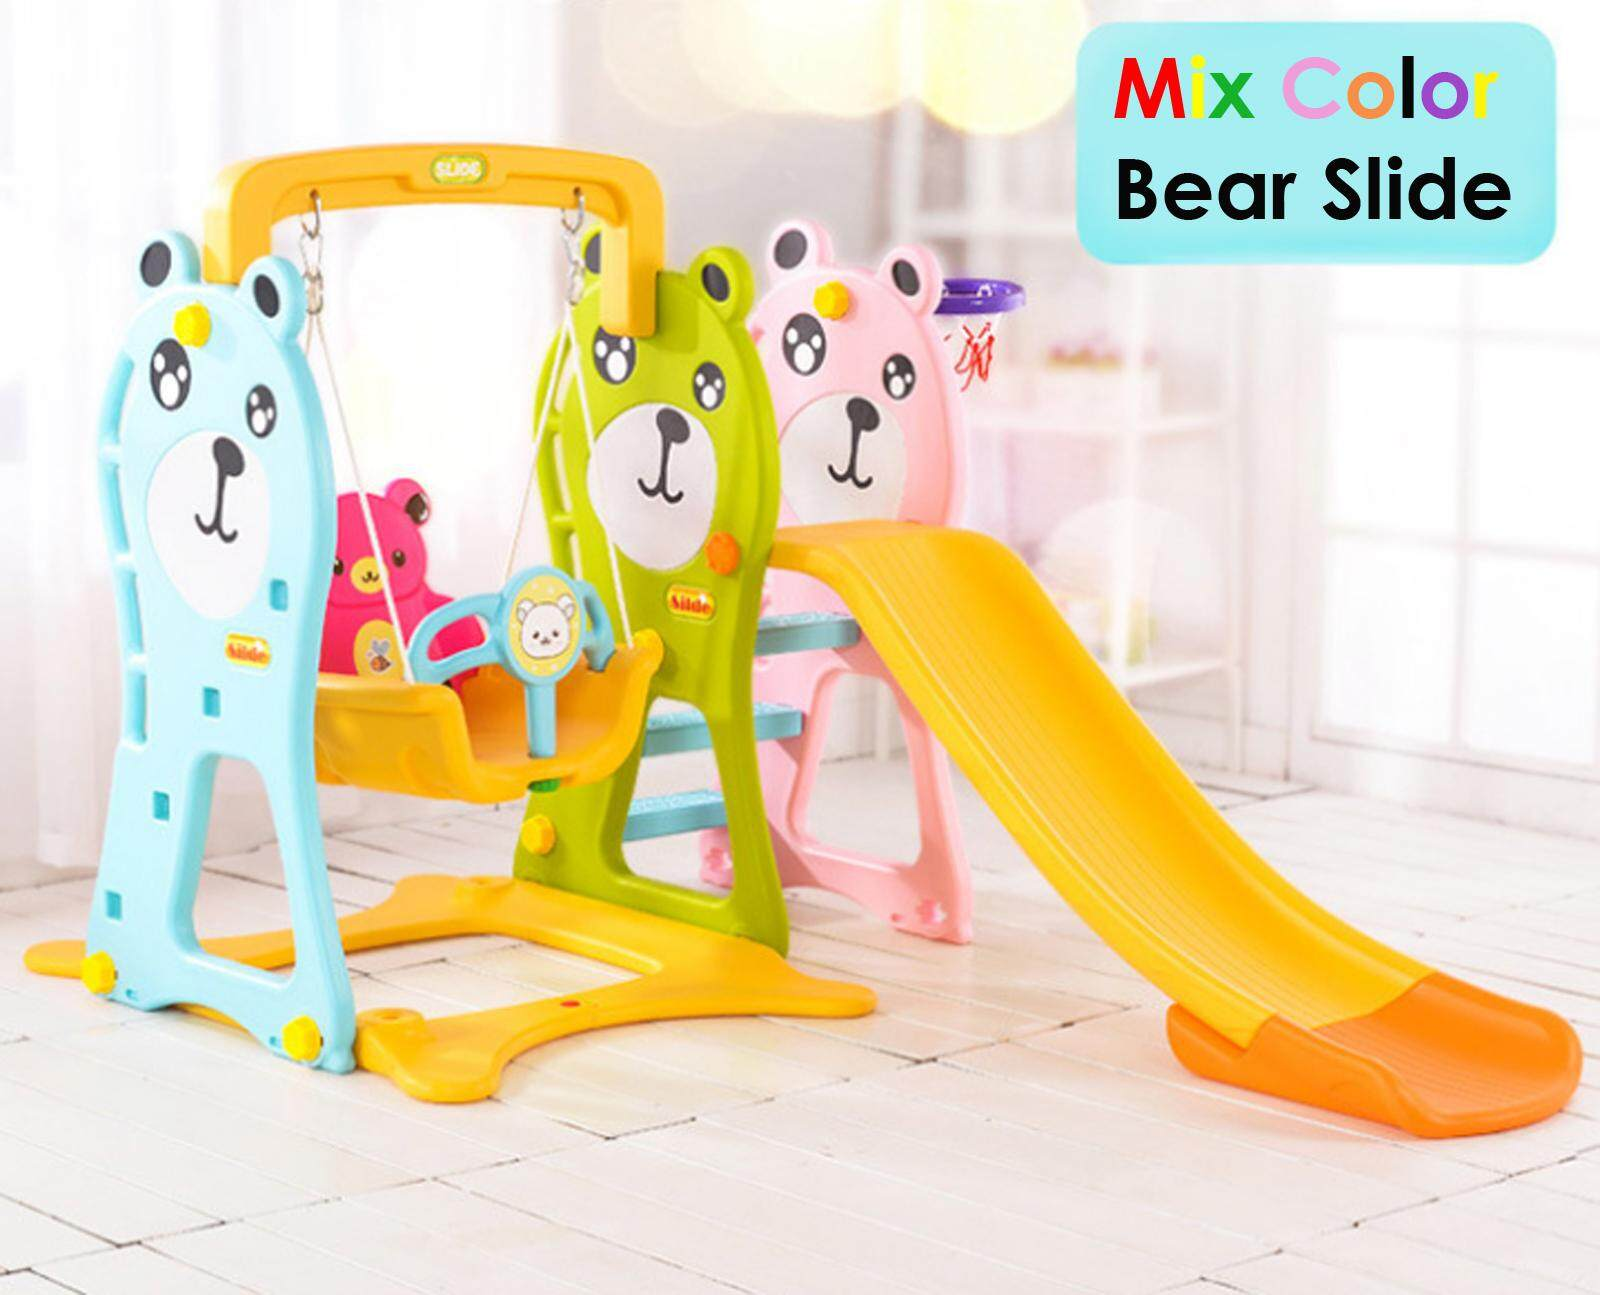 Nava Diy 3 In 1 Colorful Bear Indoor Swing Slide For Kids And Basketball Extended Version